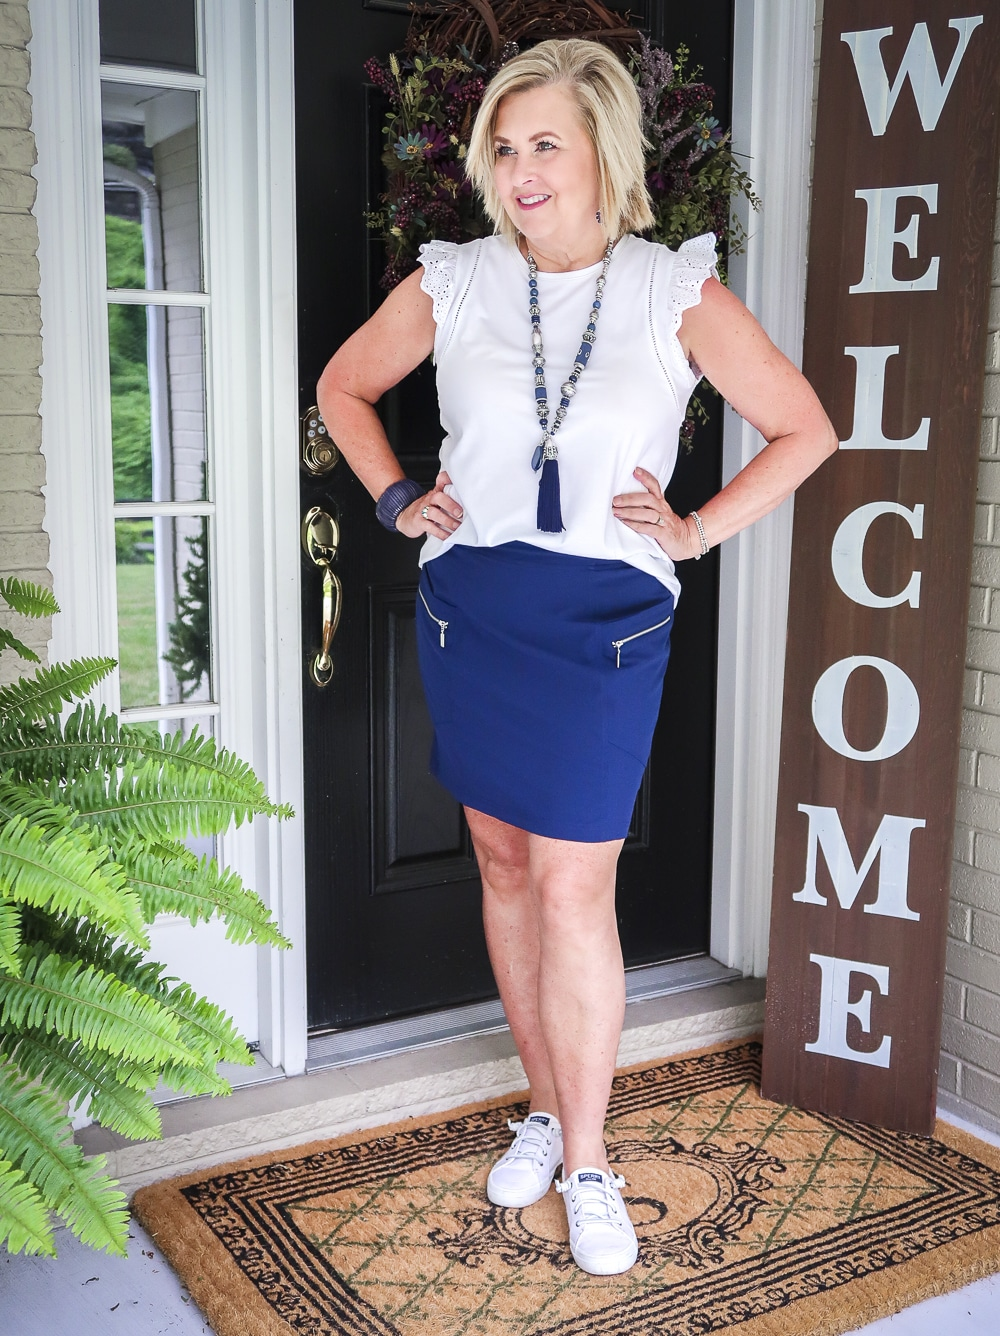 Fashion Blogger 50 Is Not Old is wearing an eyelet flutter sleeve top with a navy skort with zippers and a pair of white no-tie sneakers